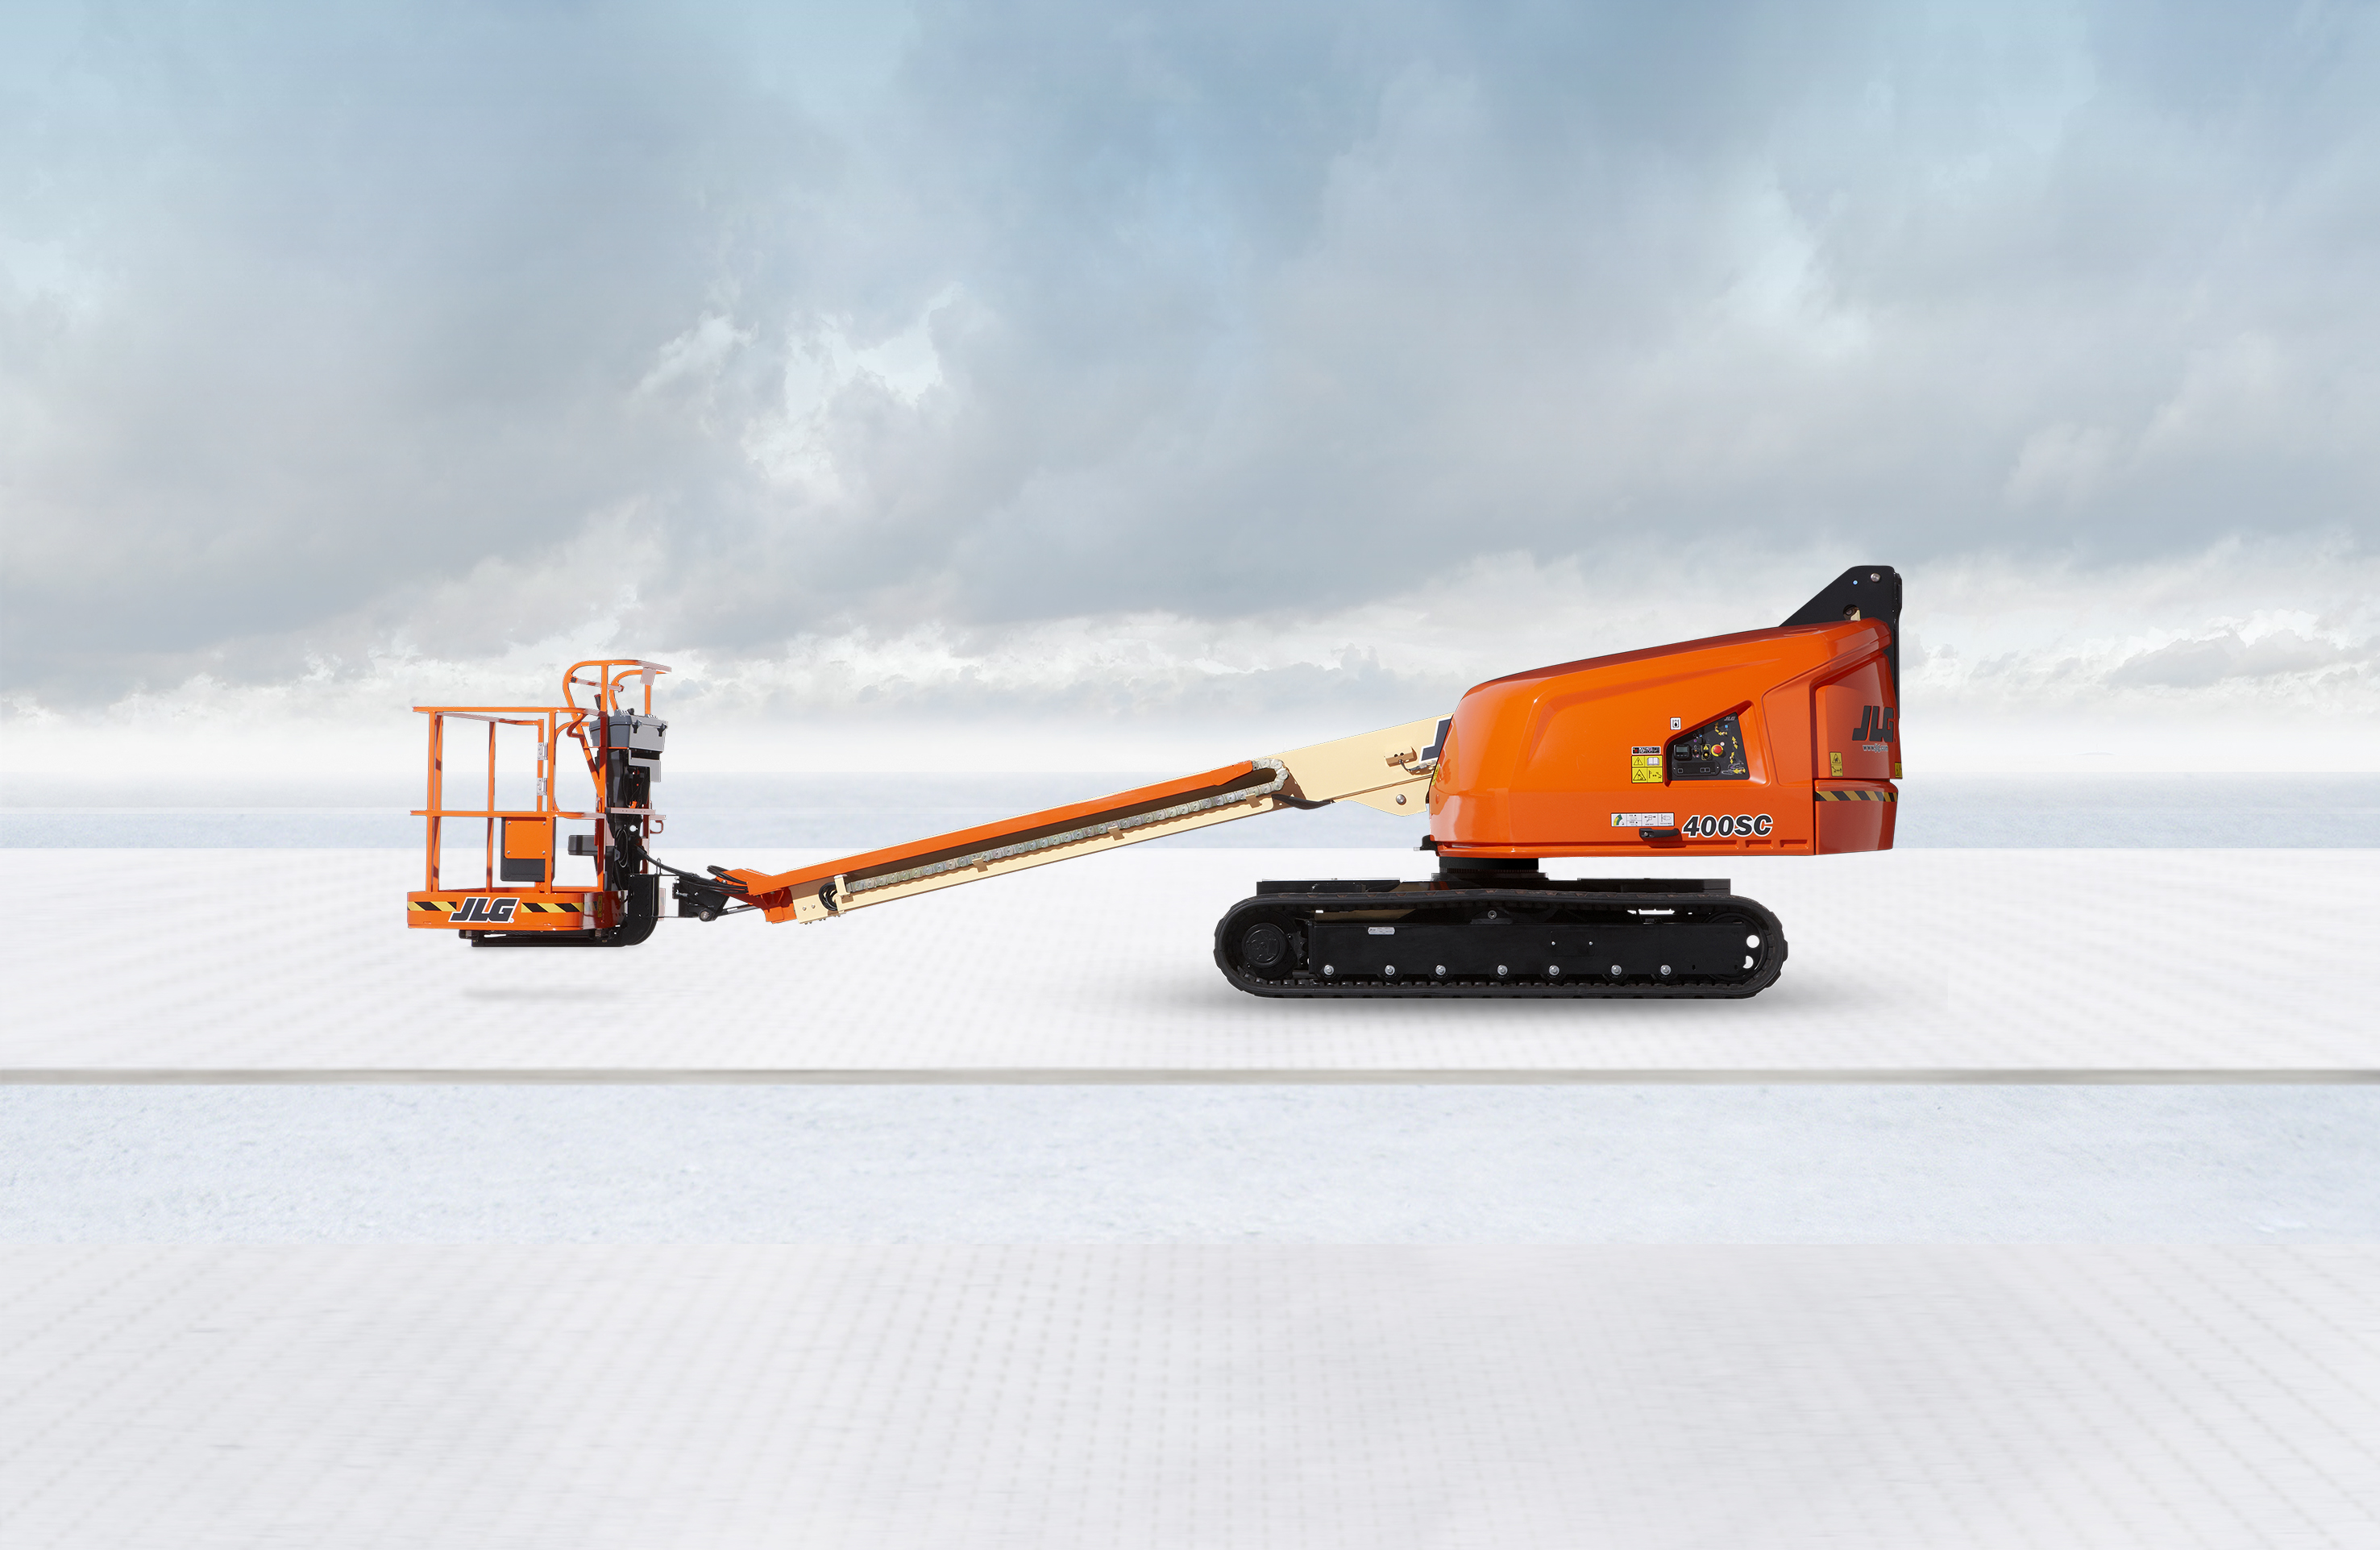 Tracked telescopic boom lifts